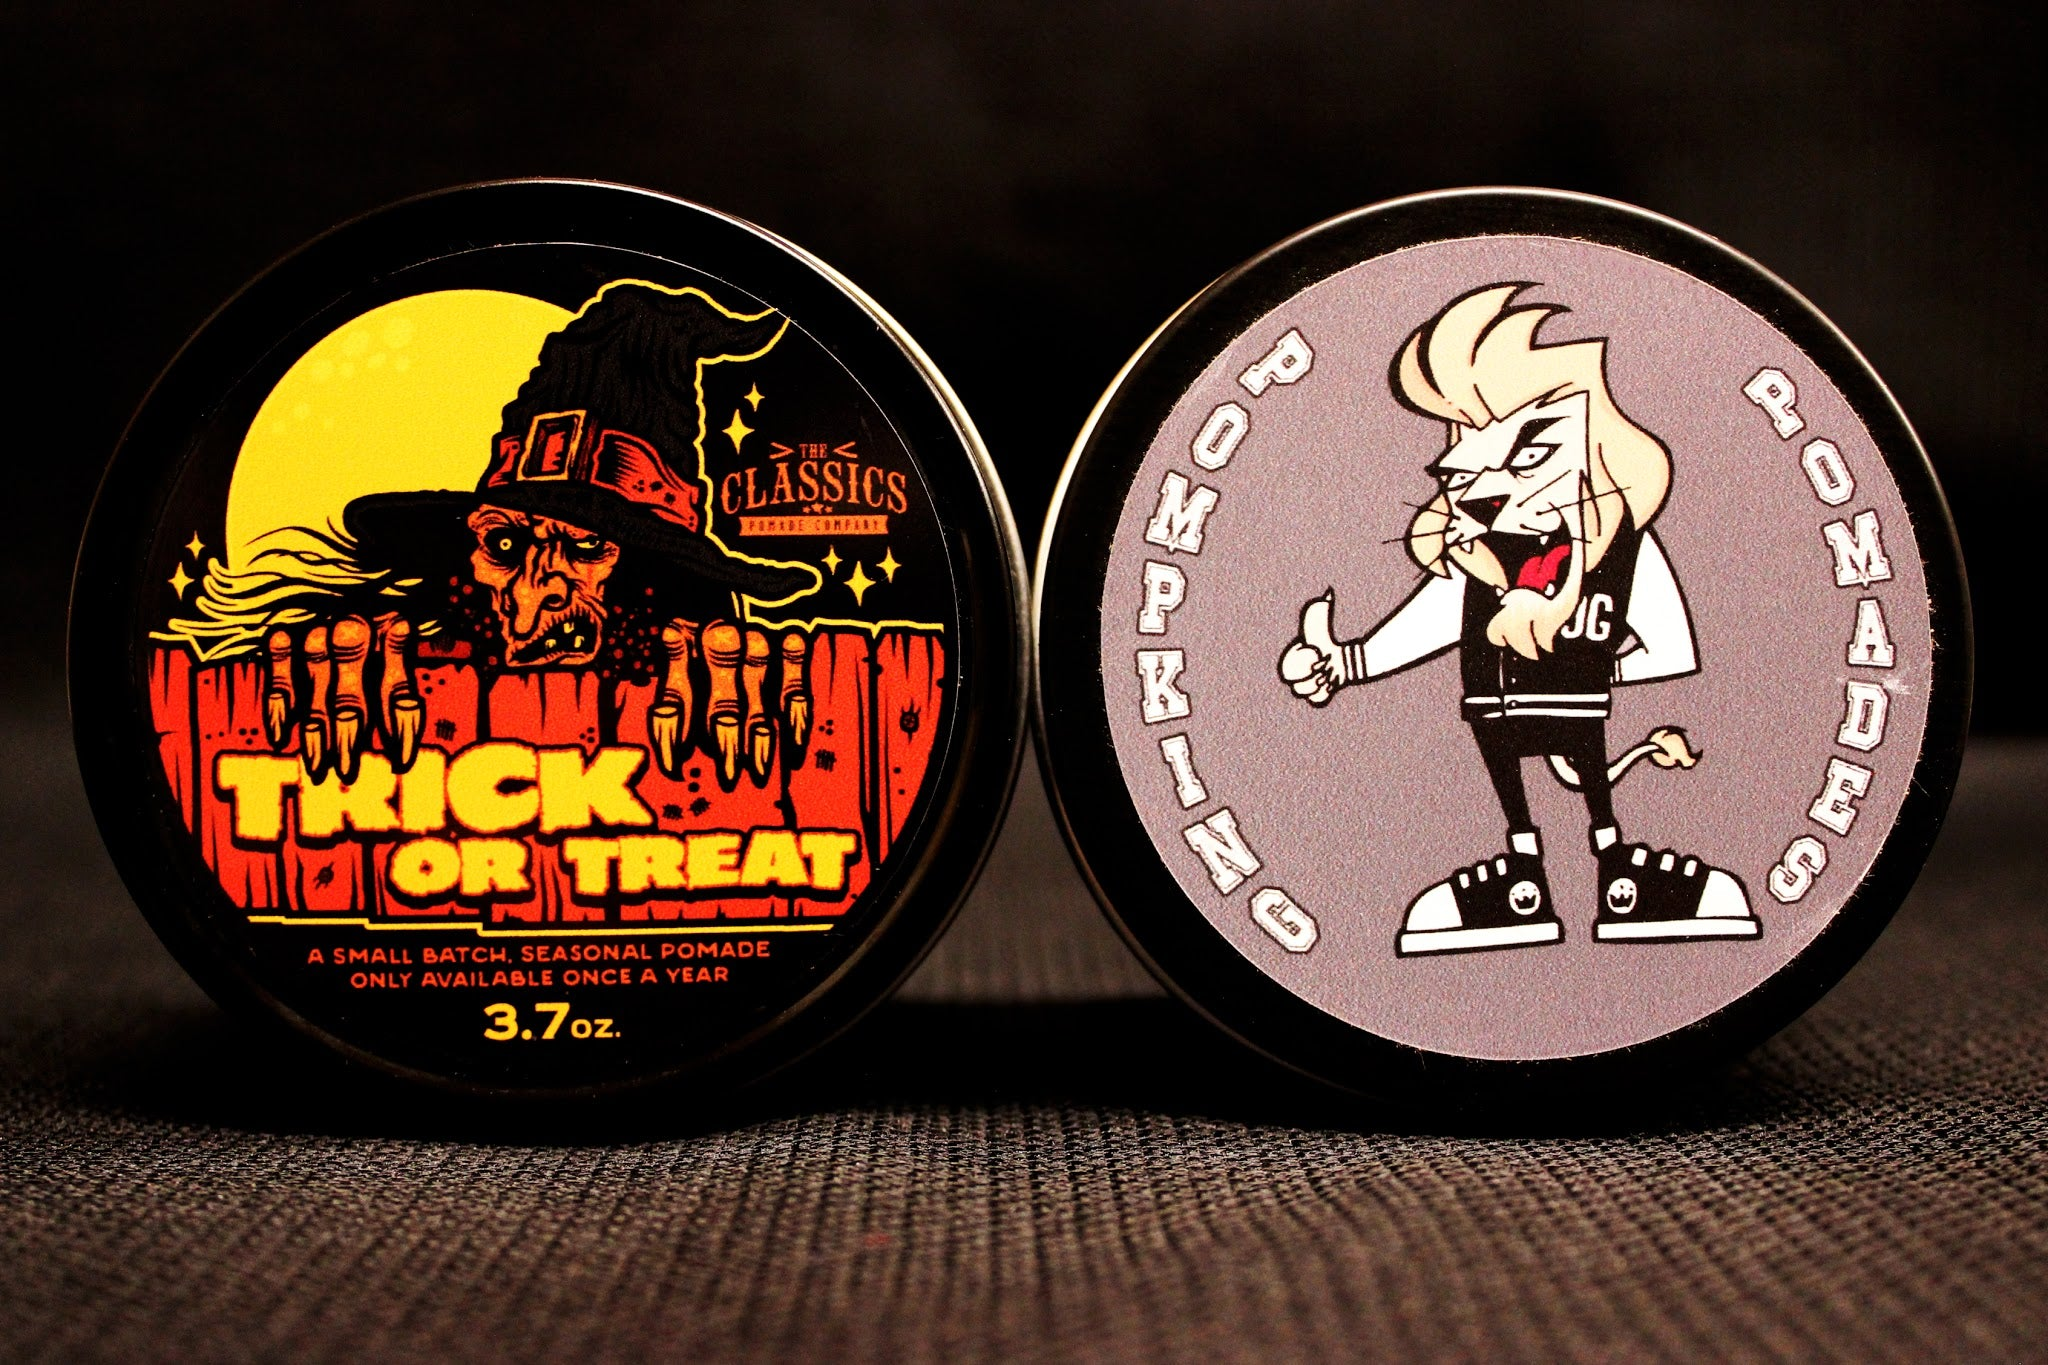 The Classics Trick or Treat Halloween pomade and Pompking pomade